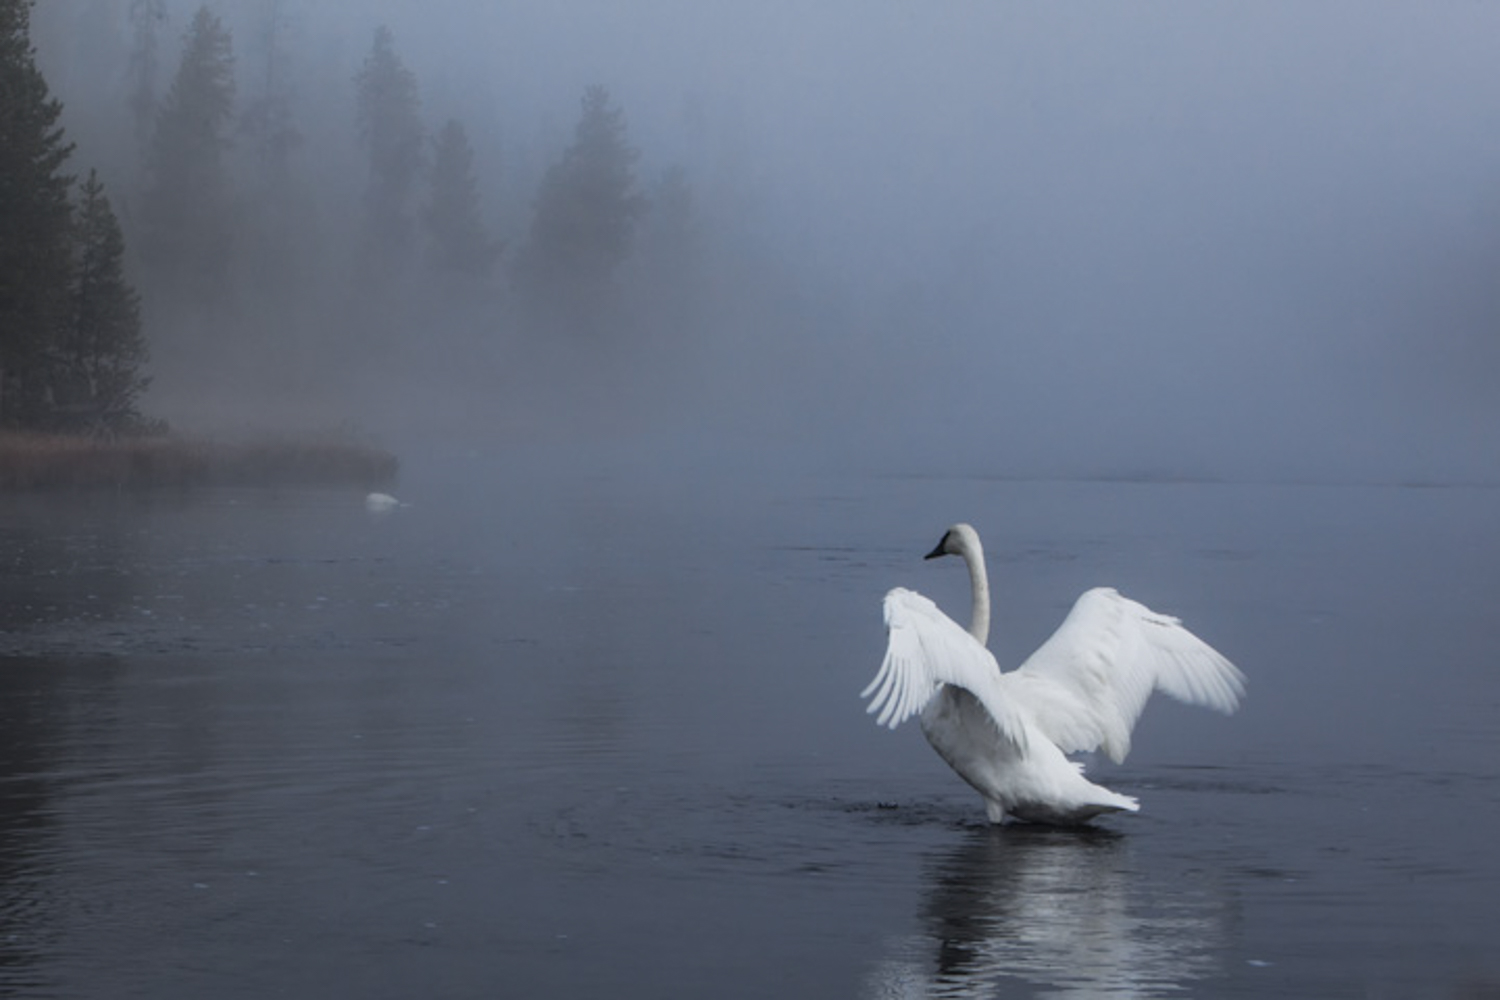 Swan about to lift off into the morning mist